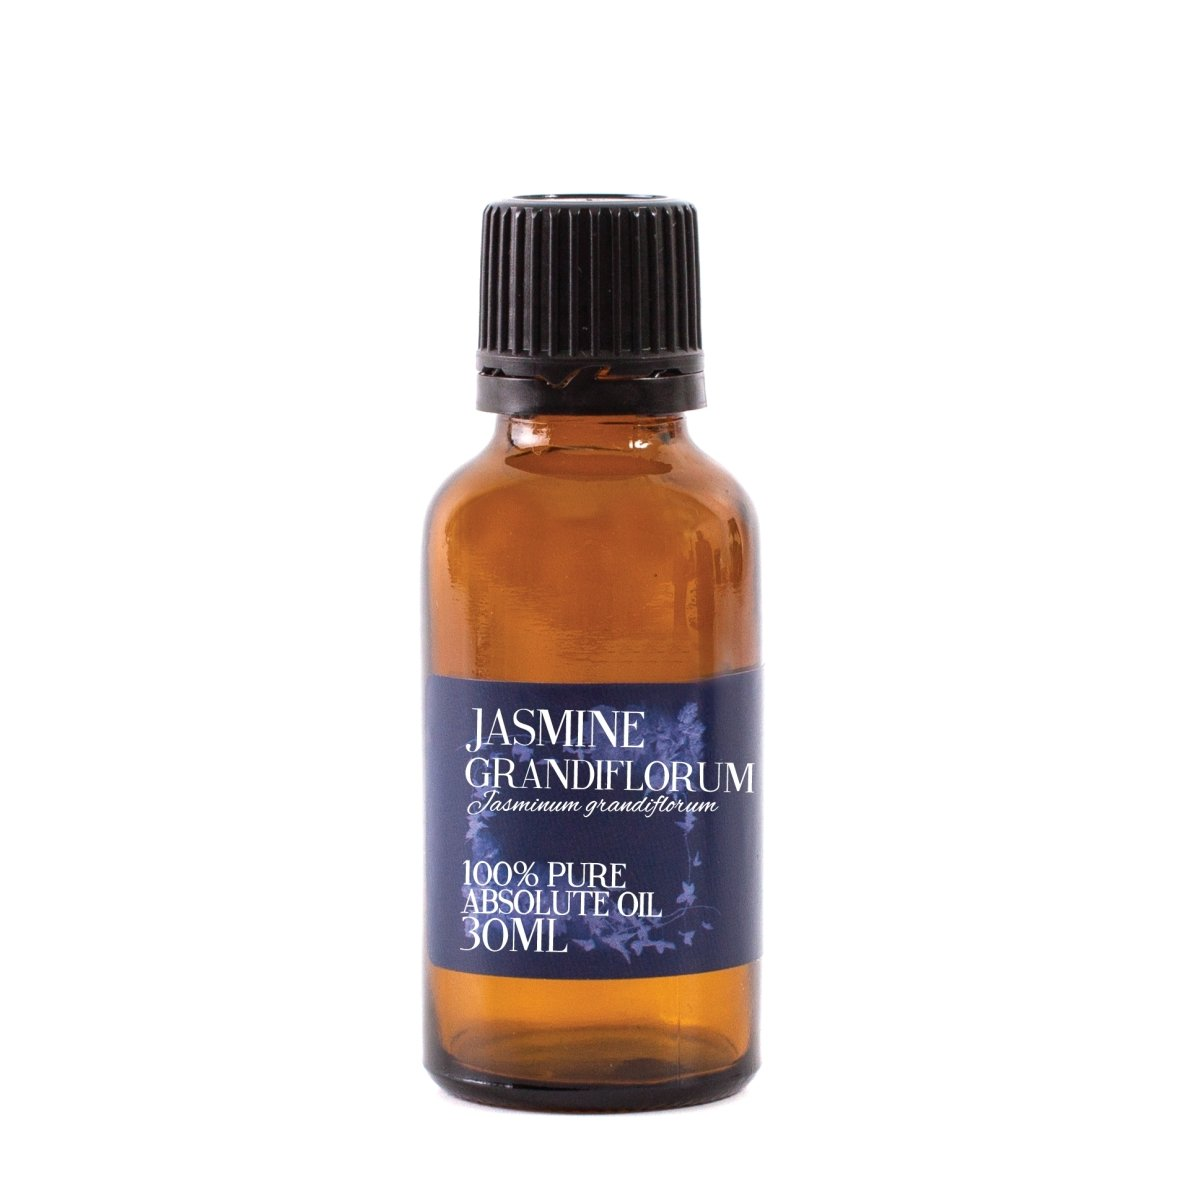 Jasmine Grandiflorum - Absolute Oil - Mystic Moments UK